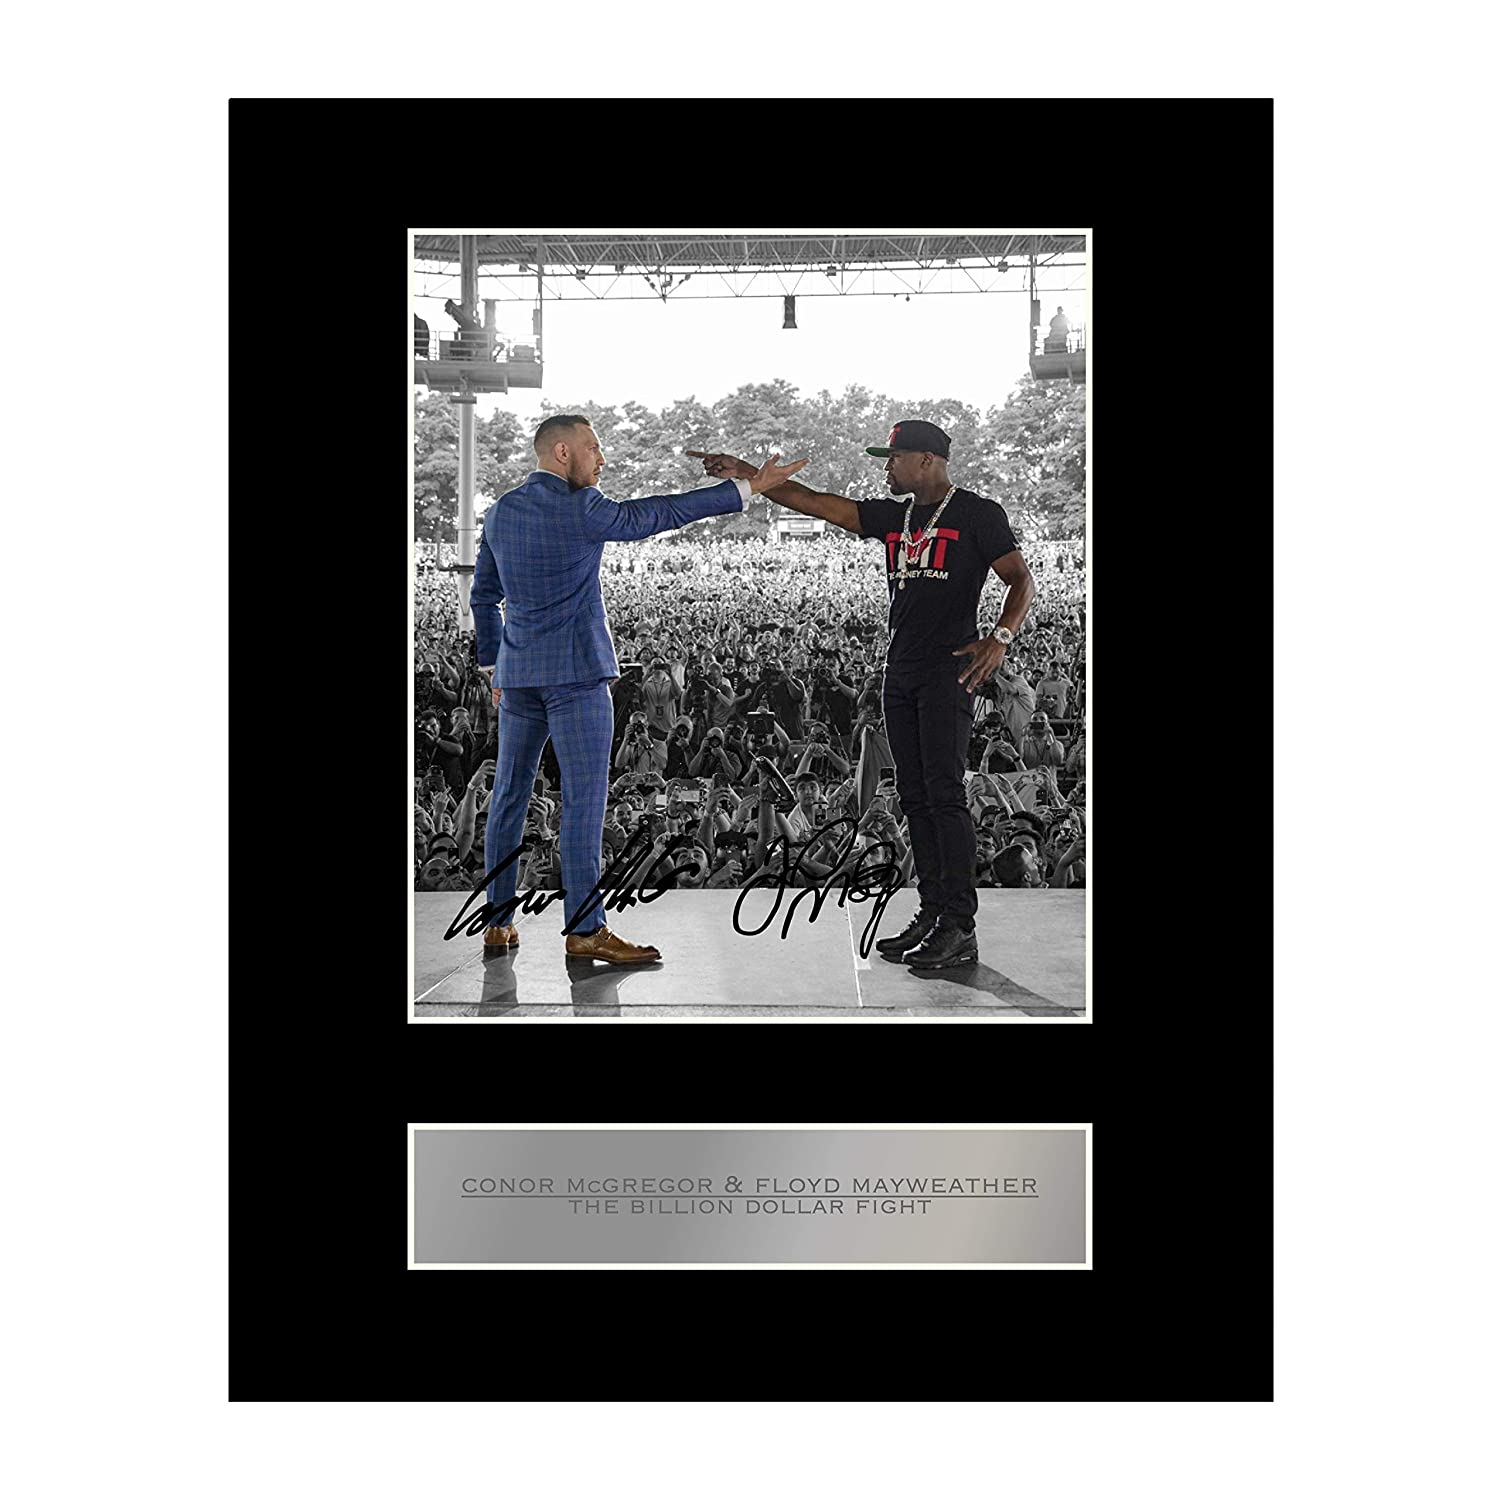 Conor McGregor and Floyd Mayweather Signed Mounted Photo Display Iconic pics